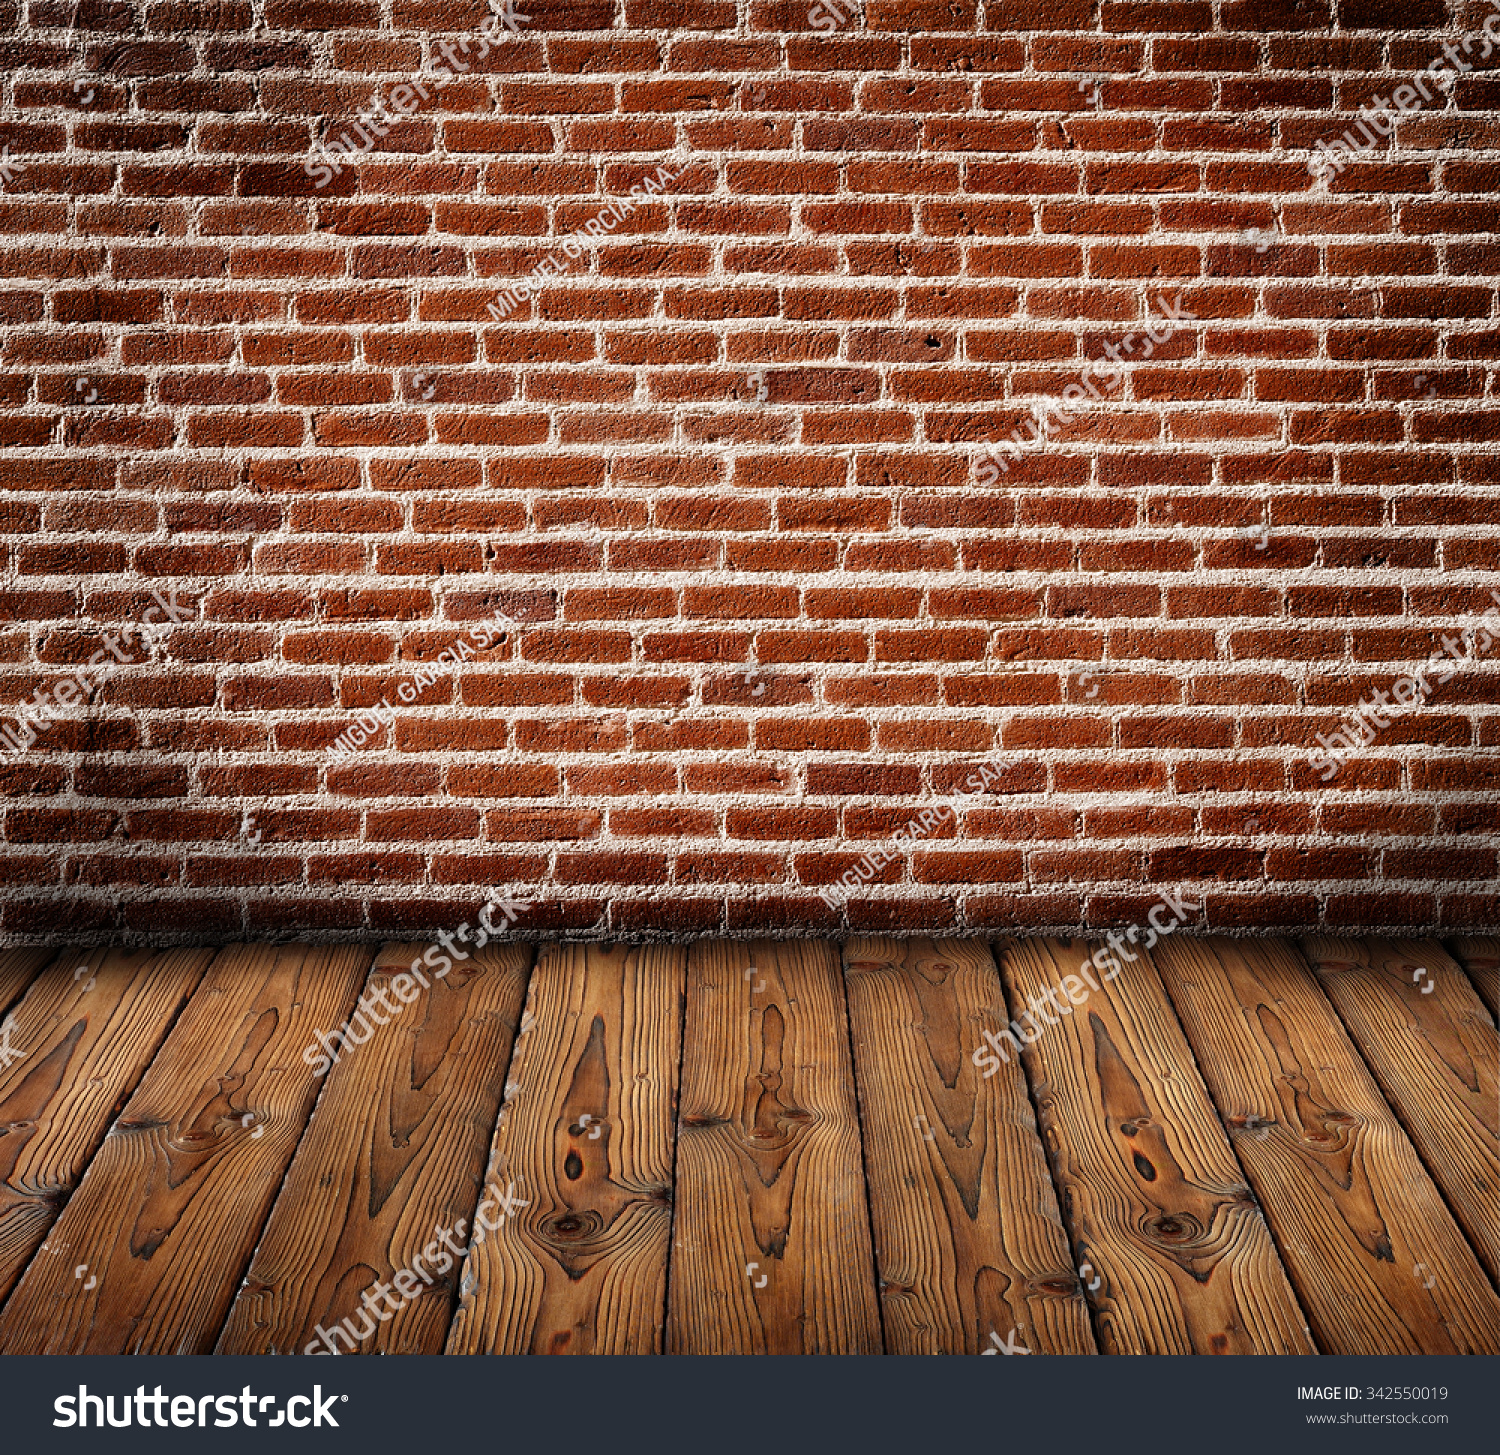 Bricks Wall With Wooden Slats Floor, Background